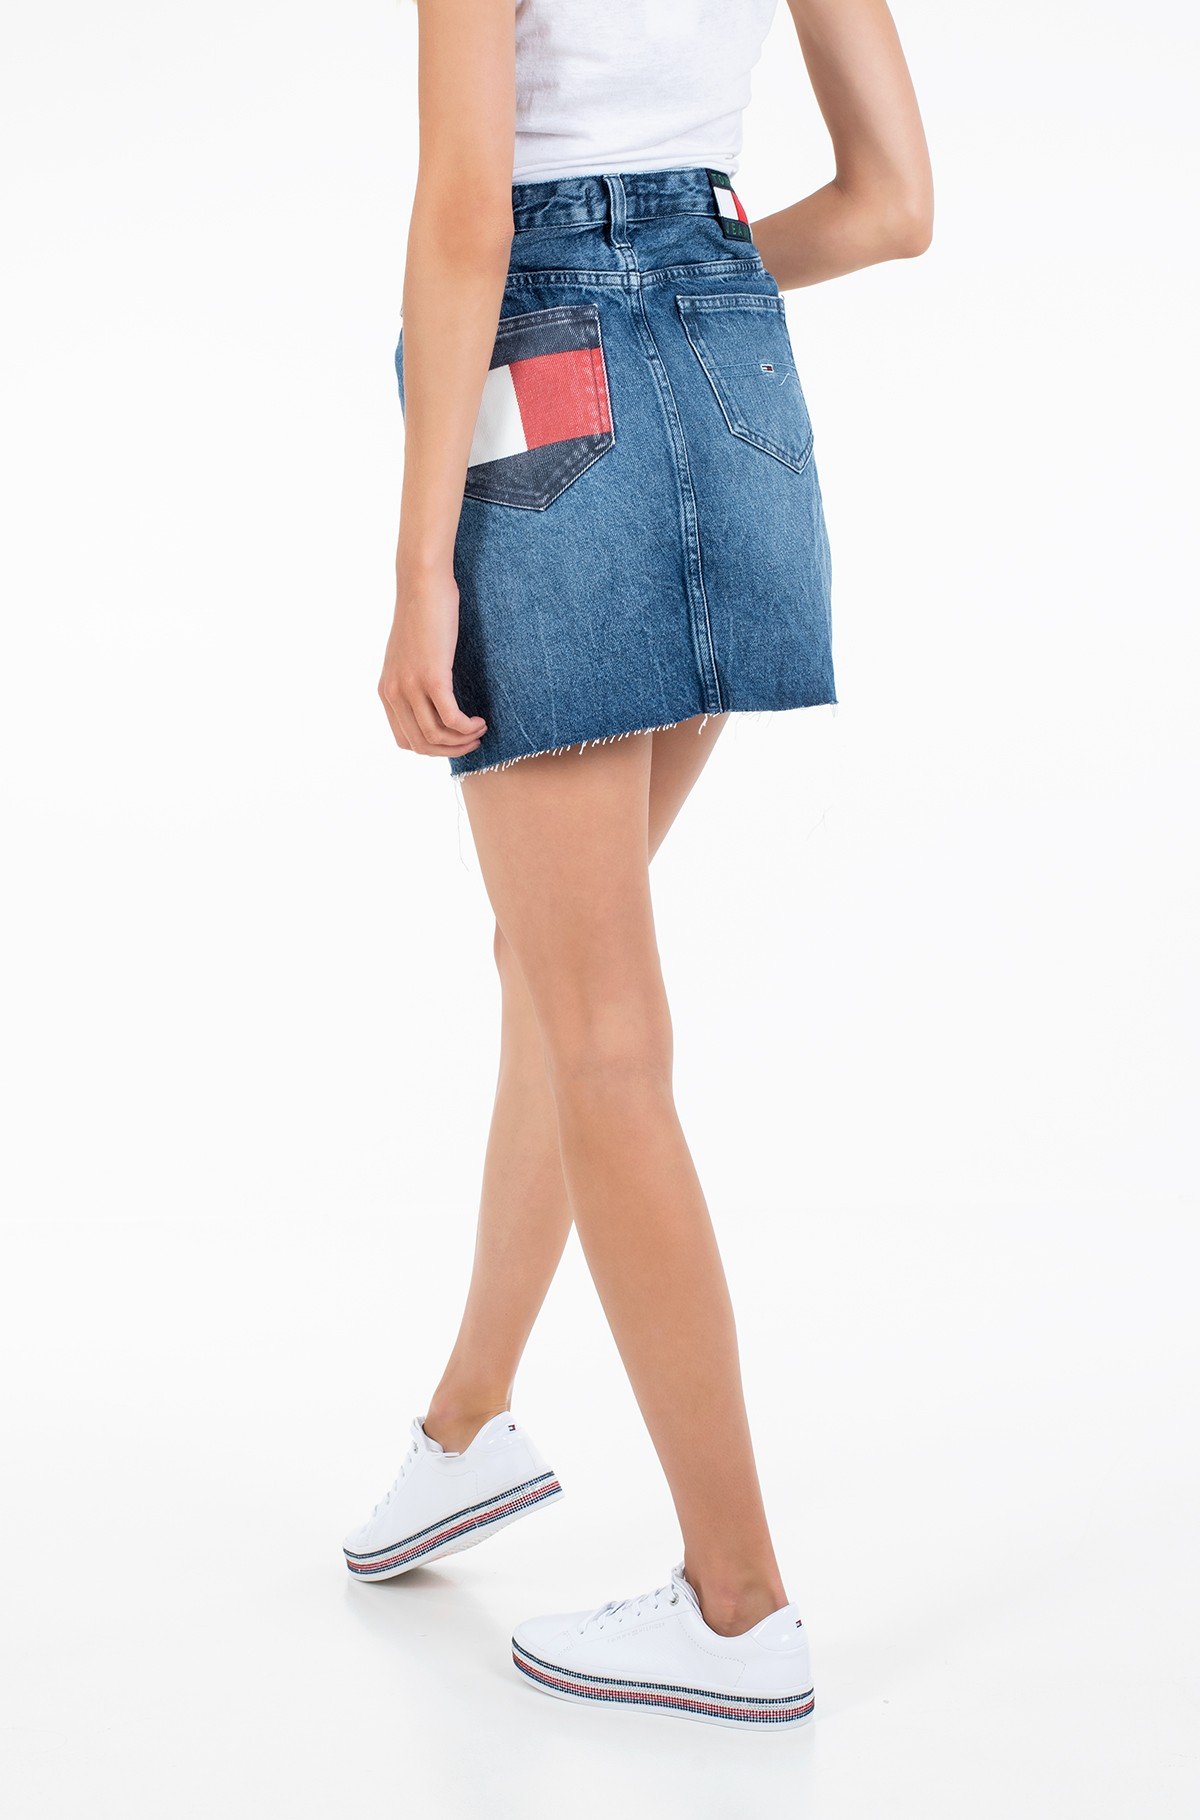 Teksaseelik SHORT DENIM SKIRT BTN FLY SVMBR-full-2